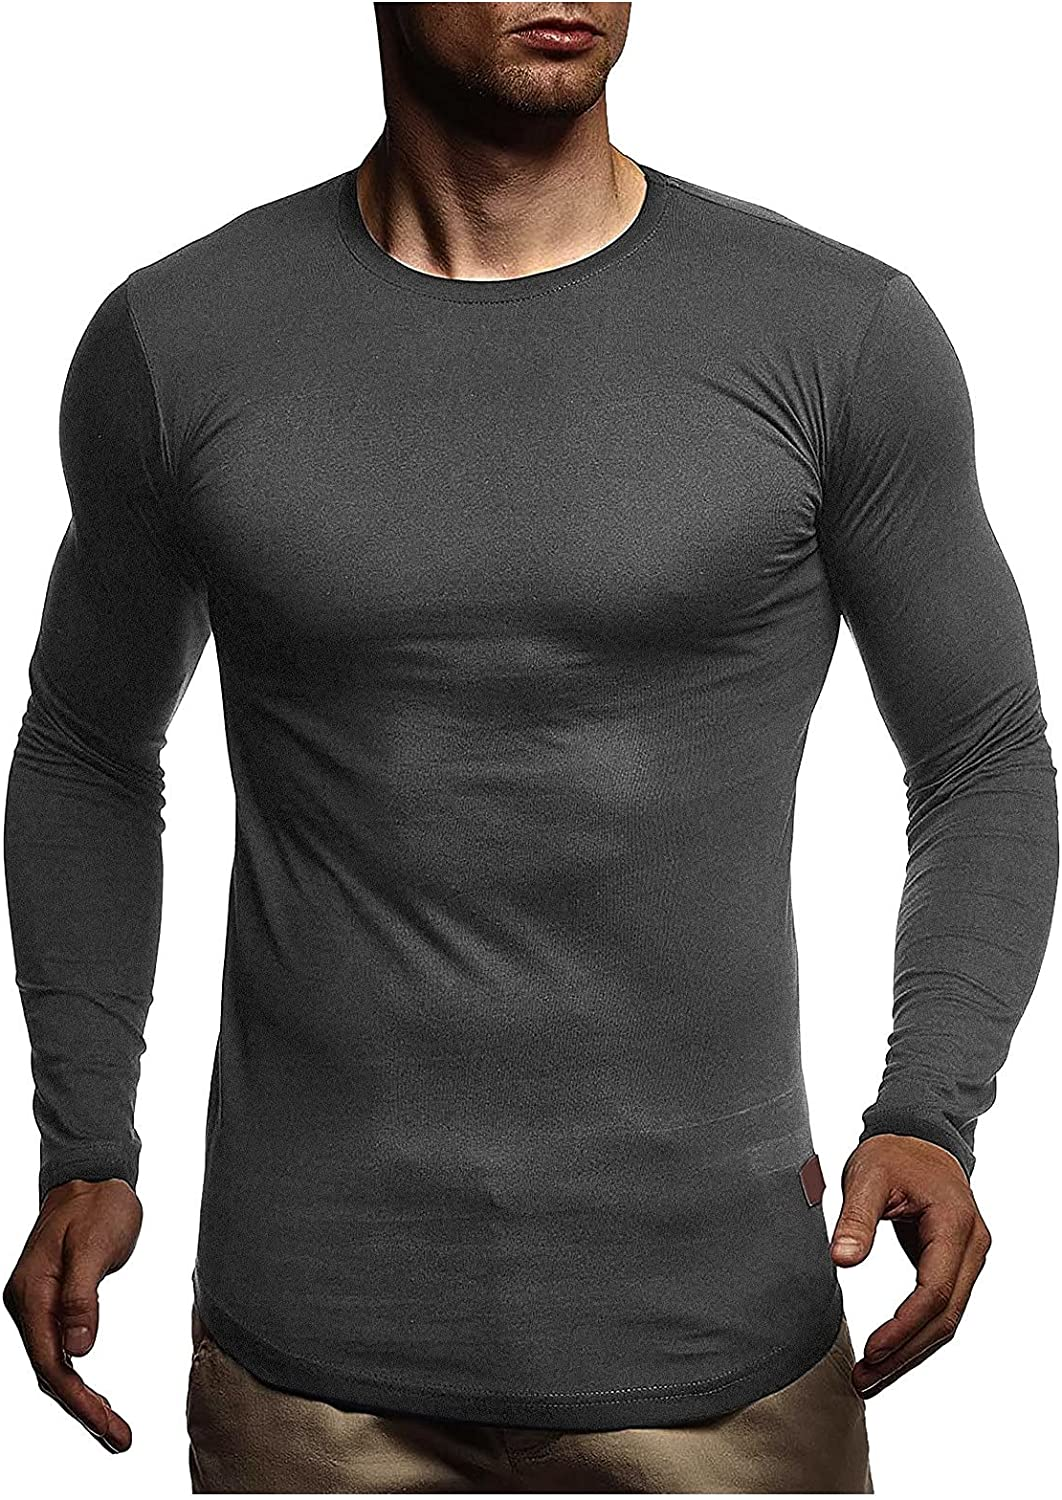 Huangse Mens Muscle Fitness T-Shirt Breathable Gym Workout Shirt Long Sleeve Slim Fit Bodybuilding Tee Shirt Hipster Shirts